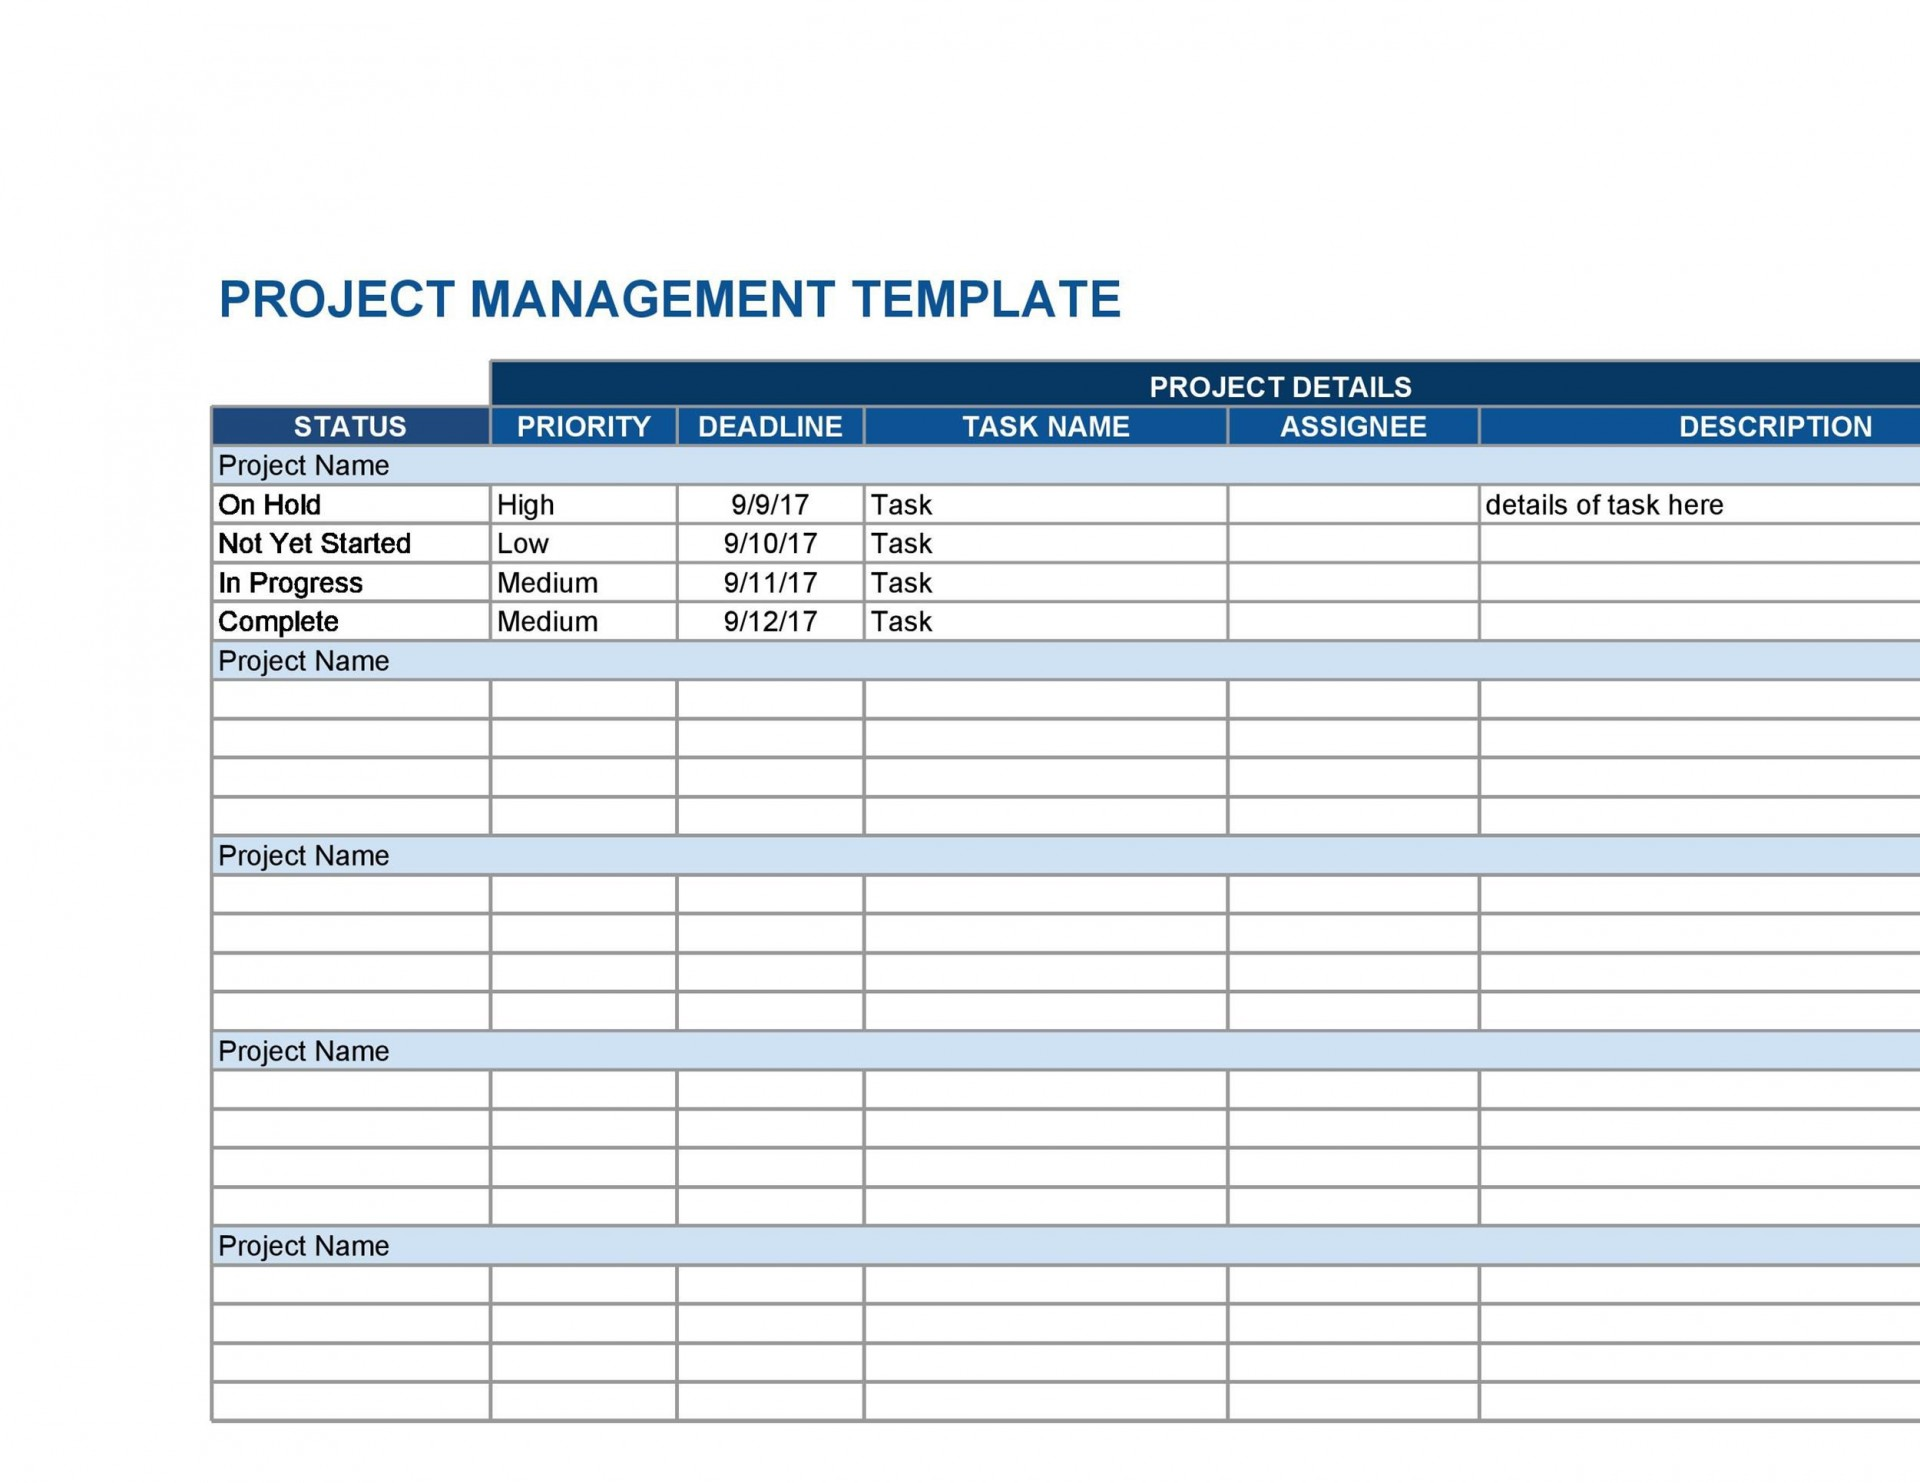 008 Striking Multiple Project Tracking Template Excel Inspiration  Free Download Xl Analysistabs-multiple-project-tracking-template-excel-2003-version1920